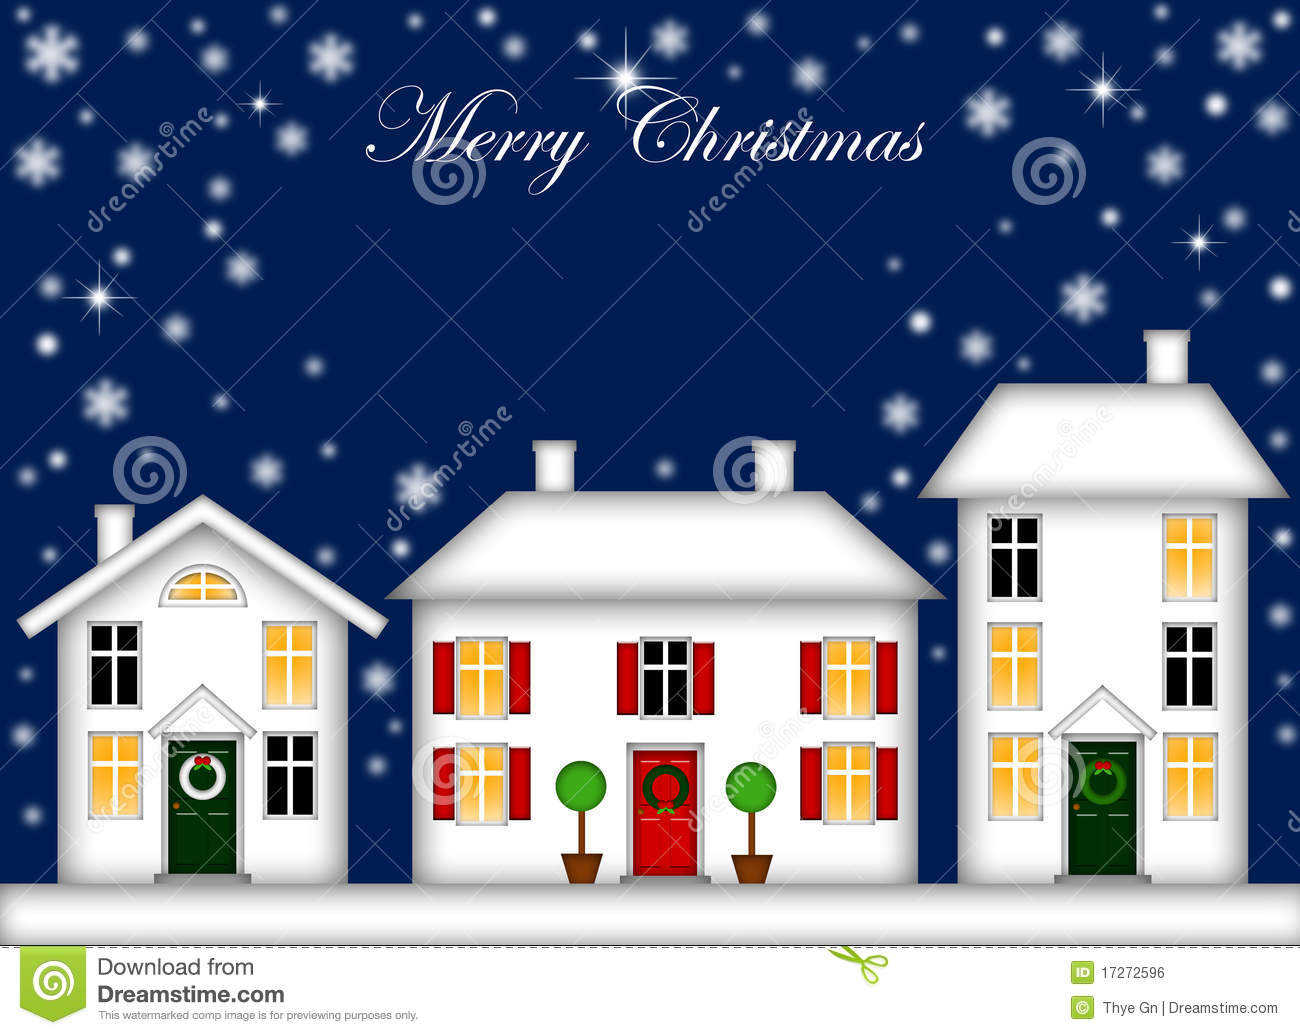 Visualizza altre idee su natale, decorazioni, idee. Snow Covered Houses Christmas Decoration Night Stock Illustration Illustration Of Leaves Abstract 17272596